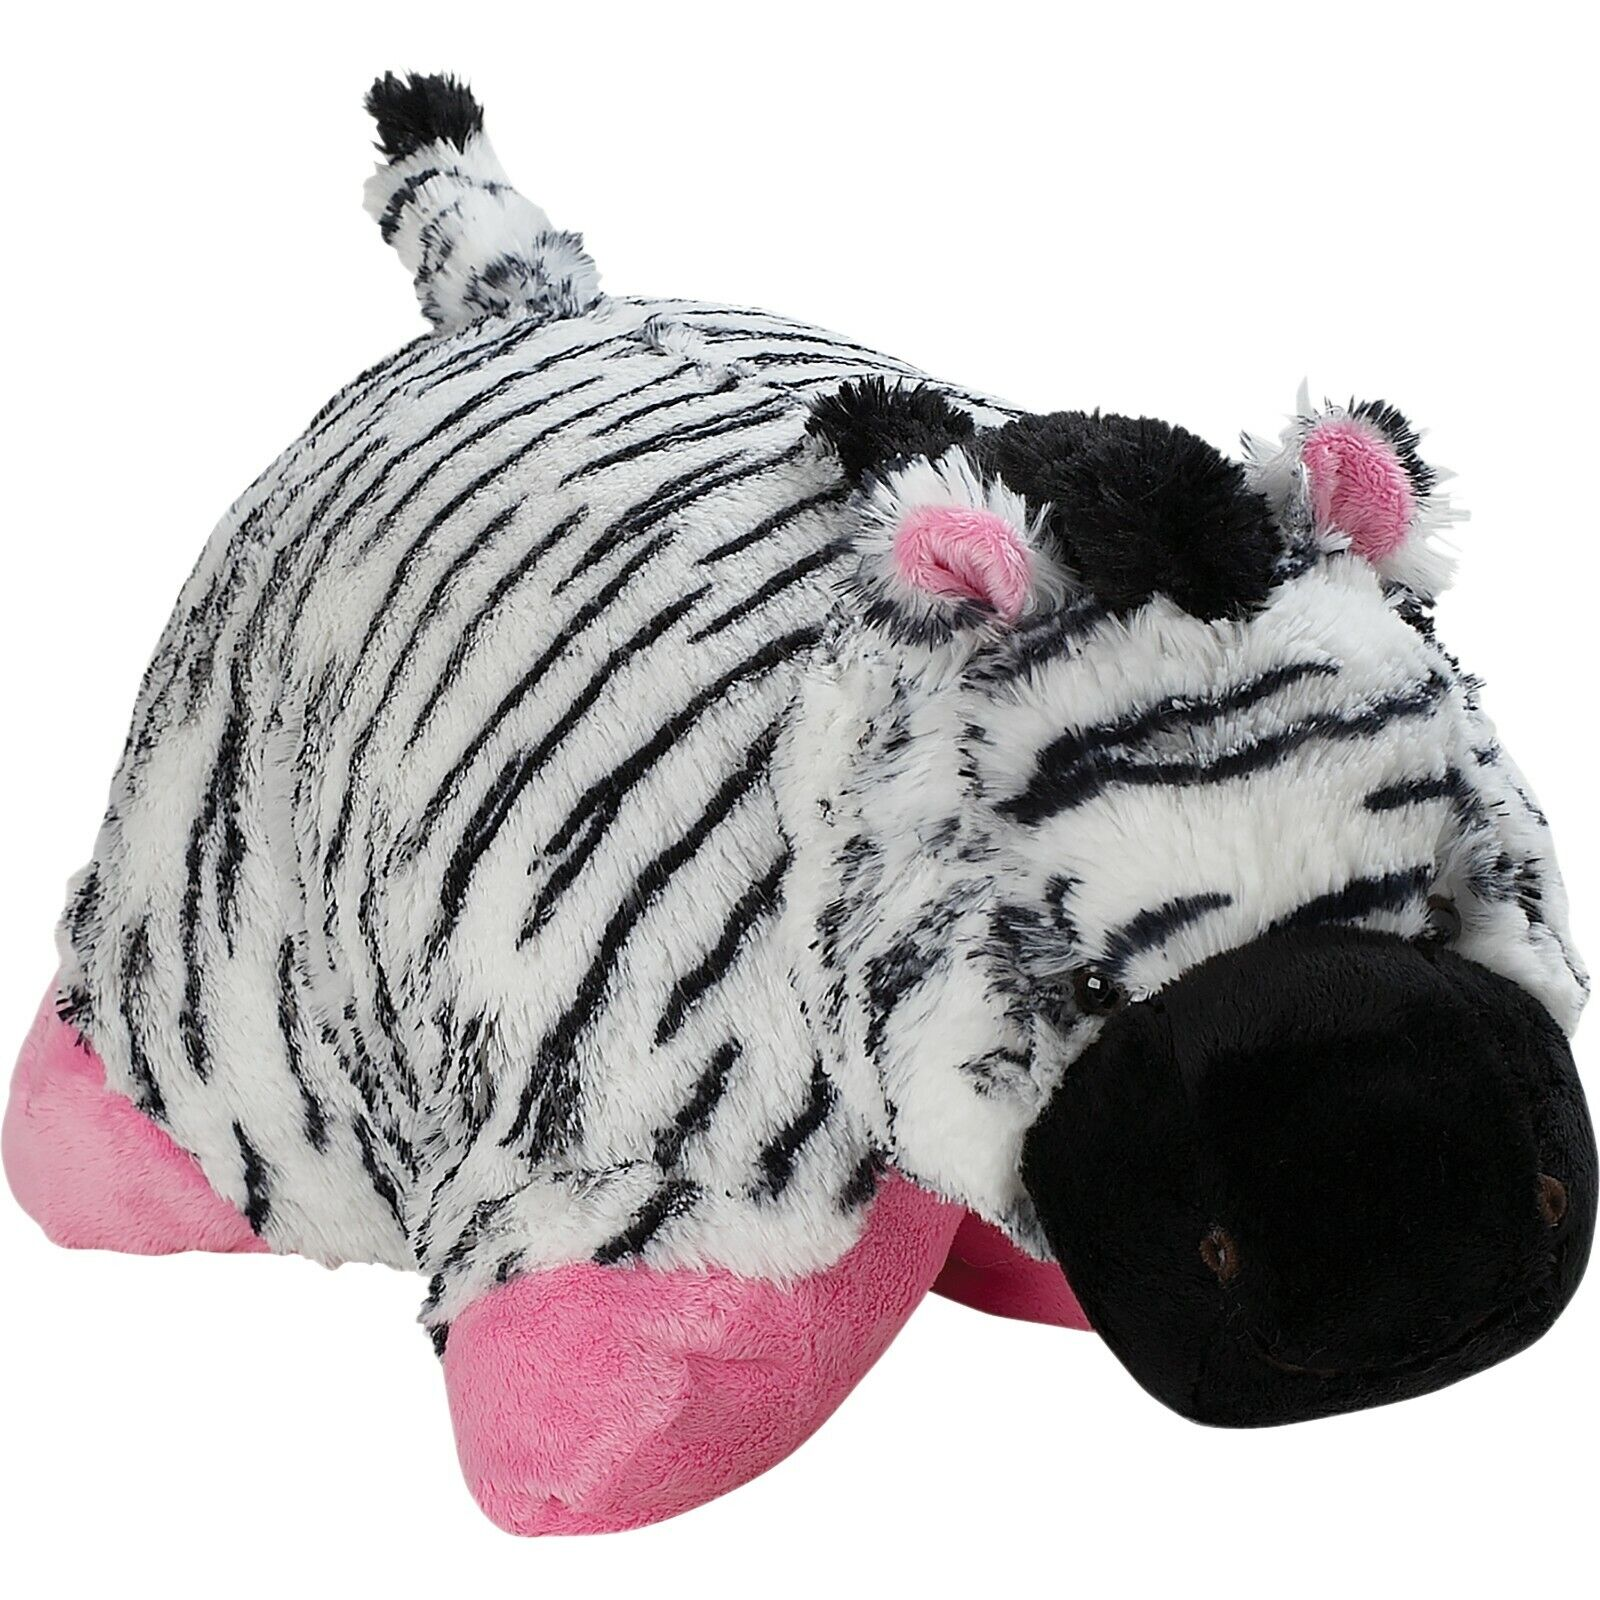 "Pillow Pets Signature, Wiggly Pig, 18"" Stuffed Animal Plush"